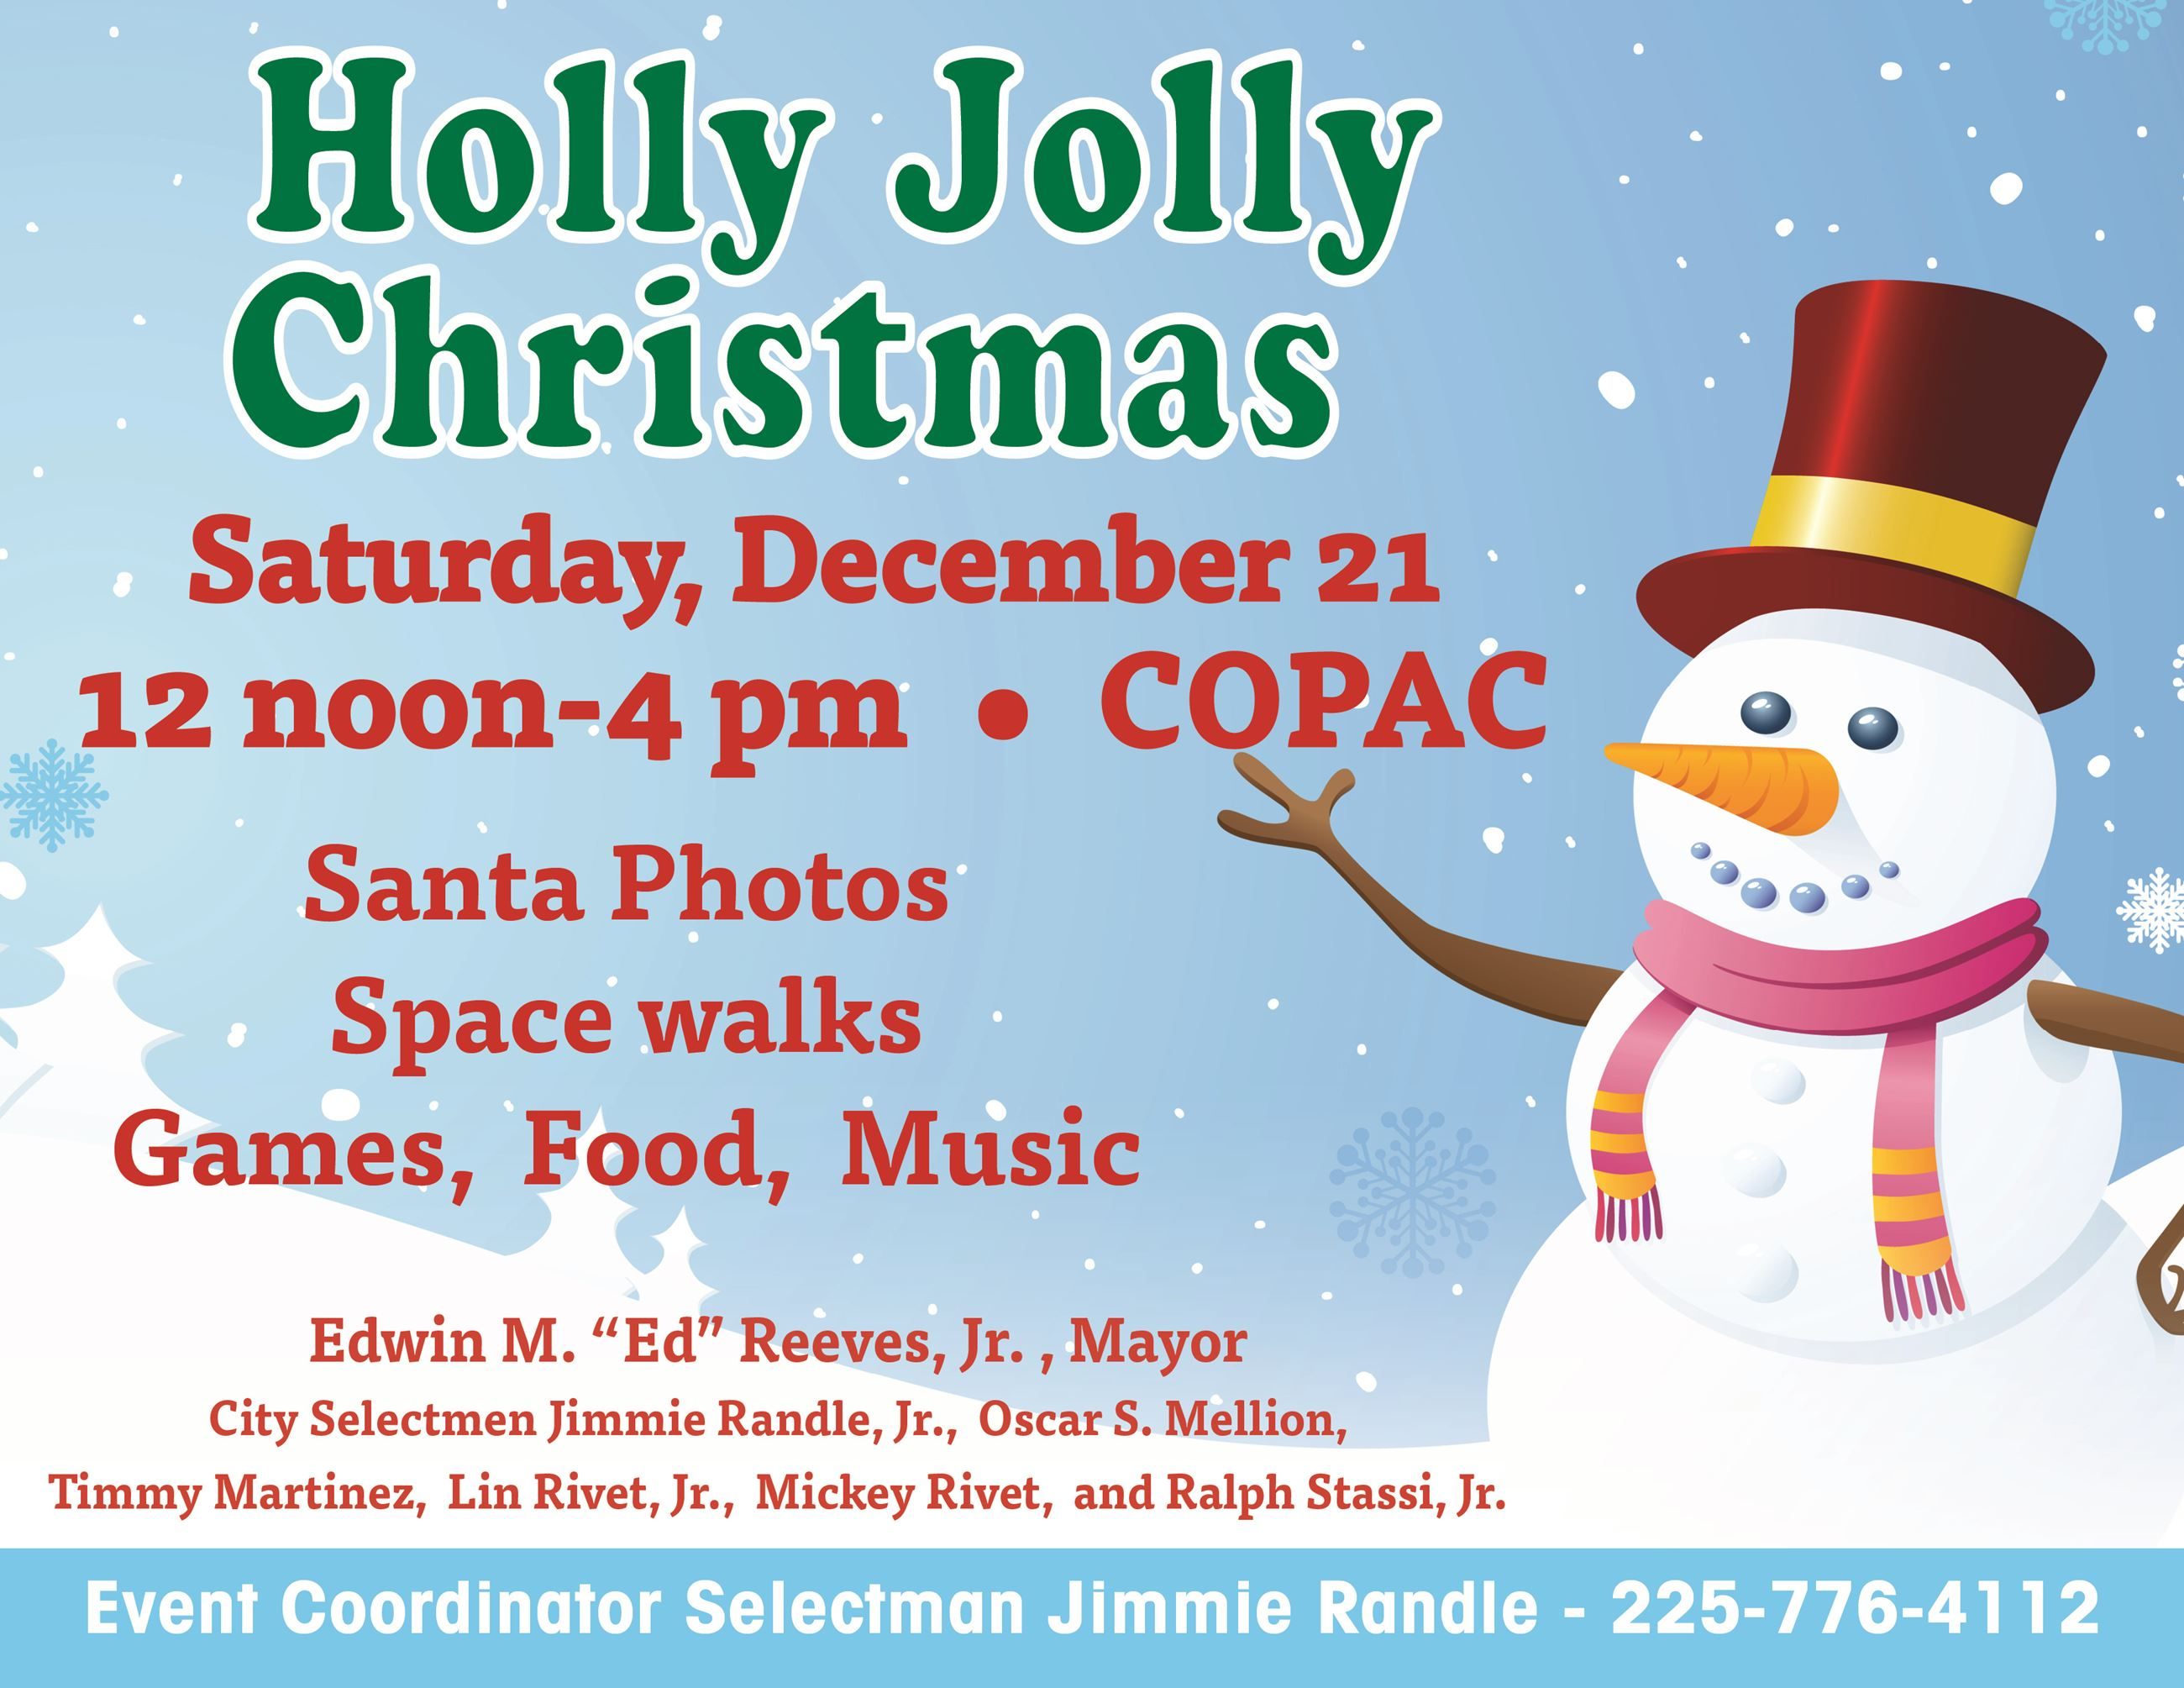 Holly Jolly Christmas flyer